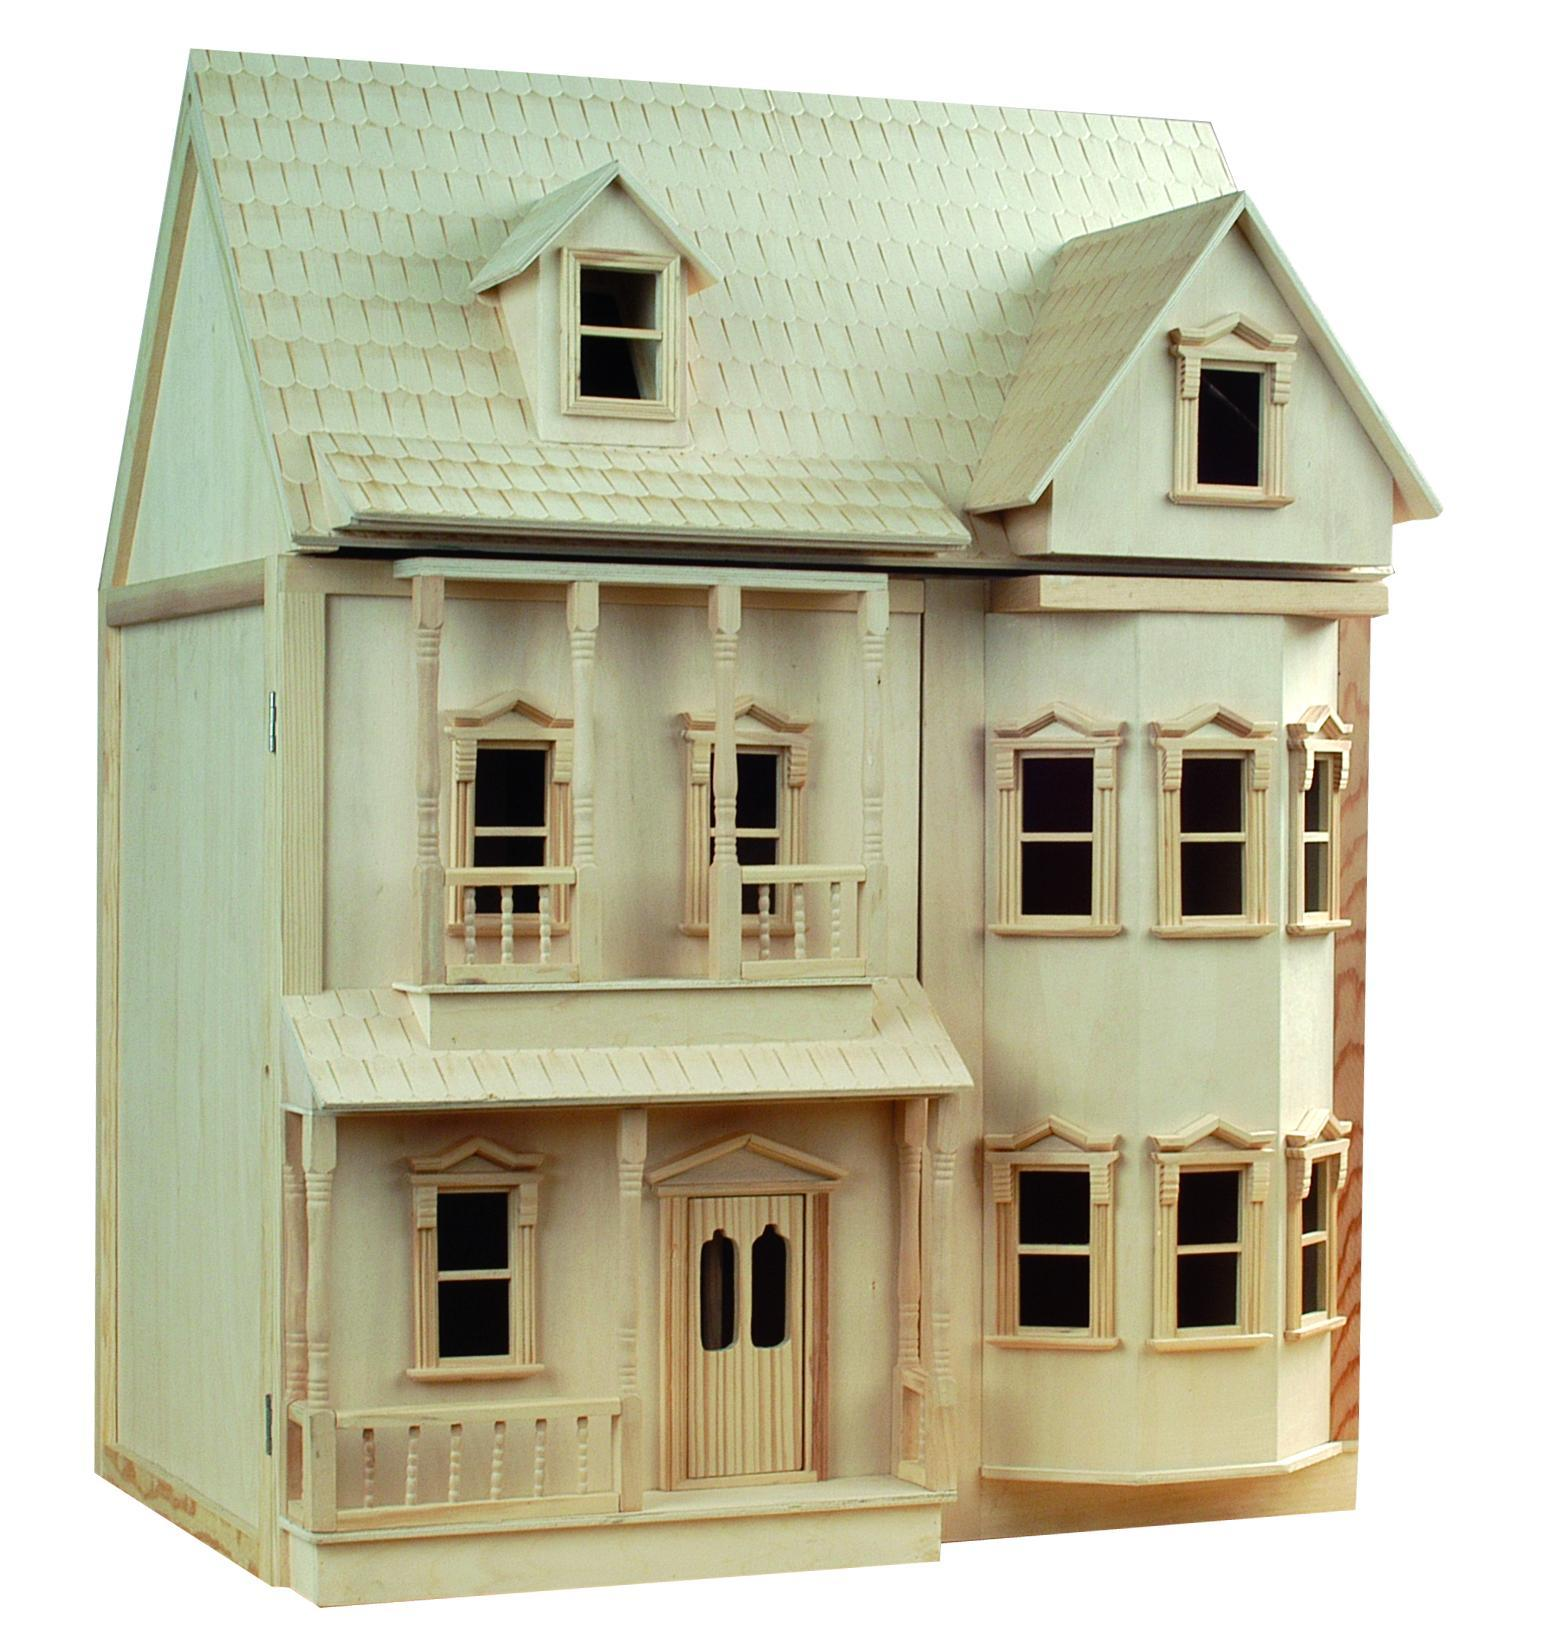 The Dolls House Le Wooden Toy Buy Victorian 1 12th Scale Wooden Doll House